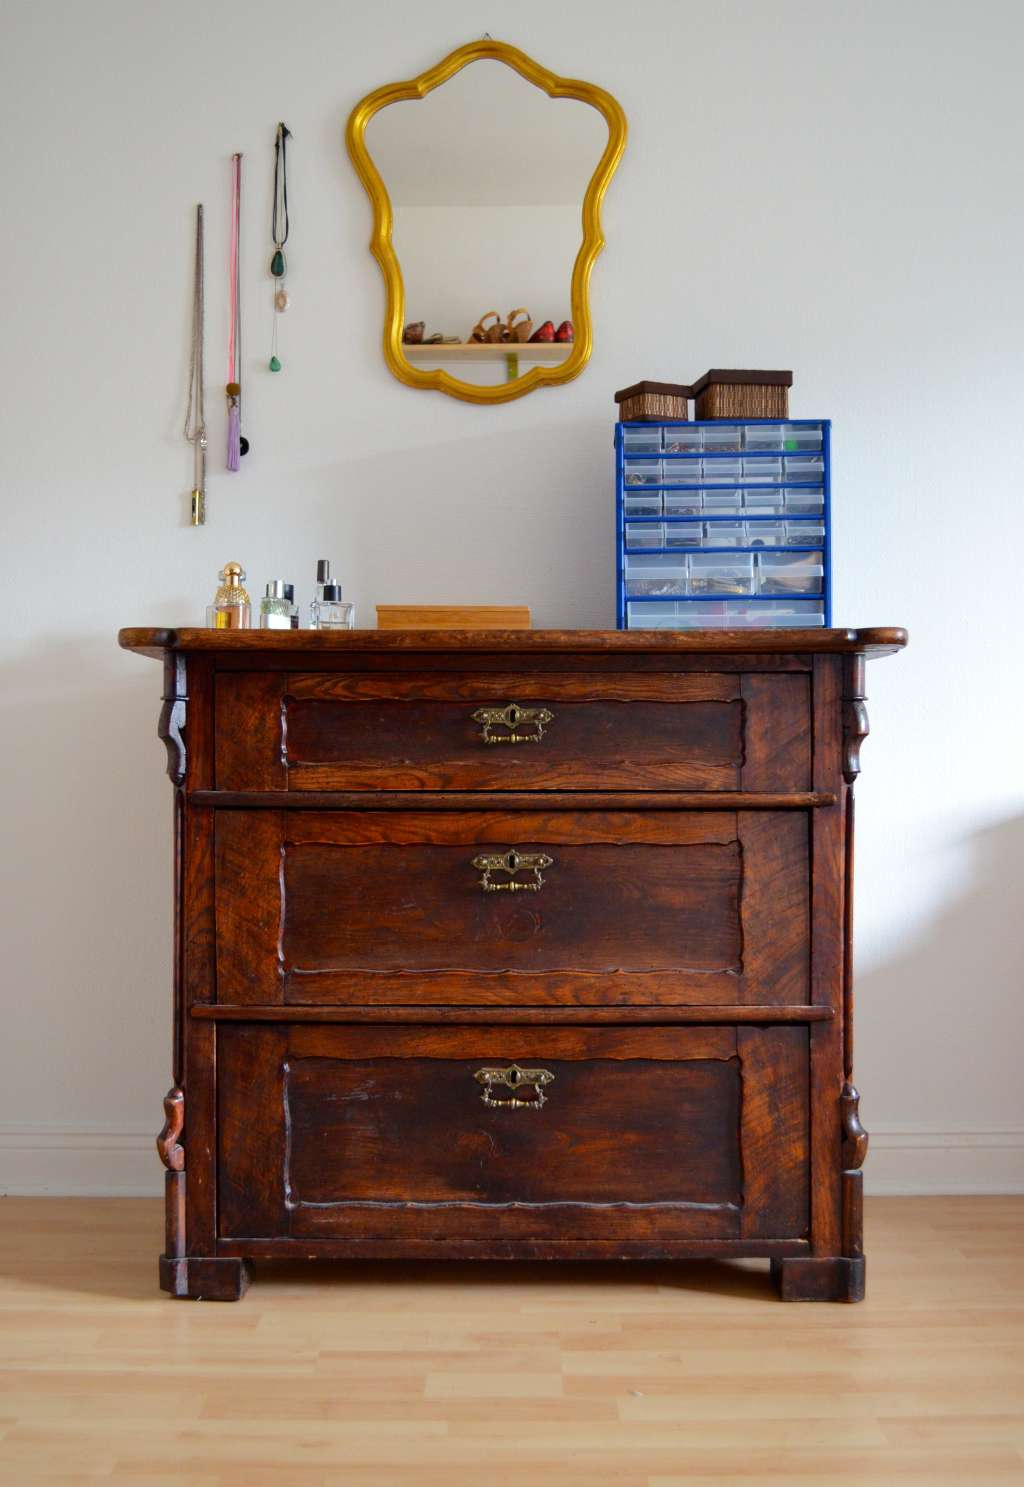 3 Ways to Give New Life to Old Furniture